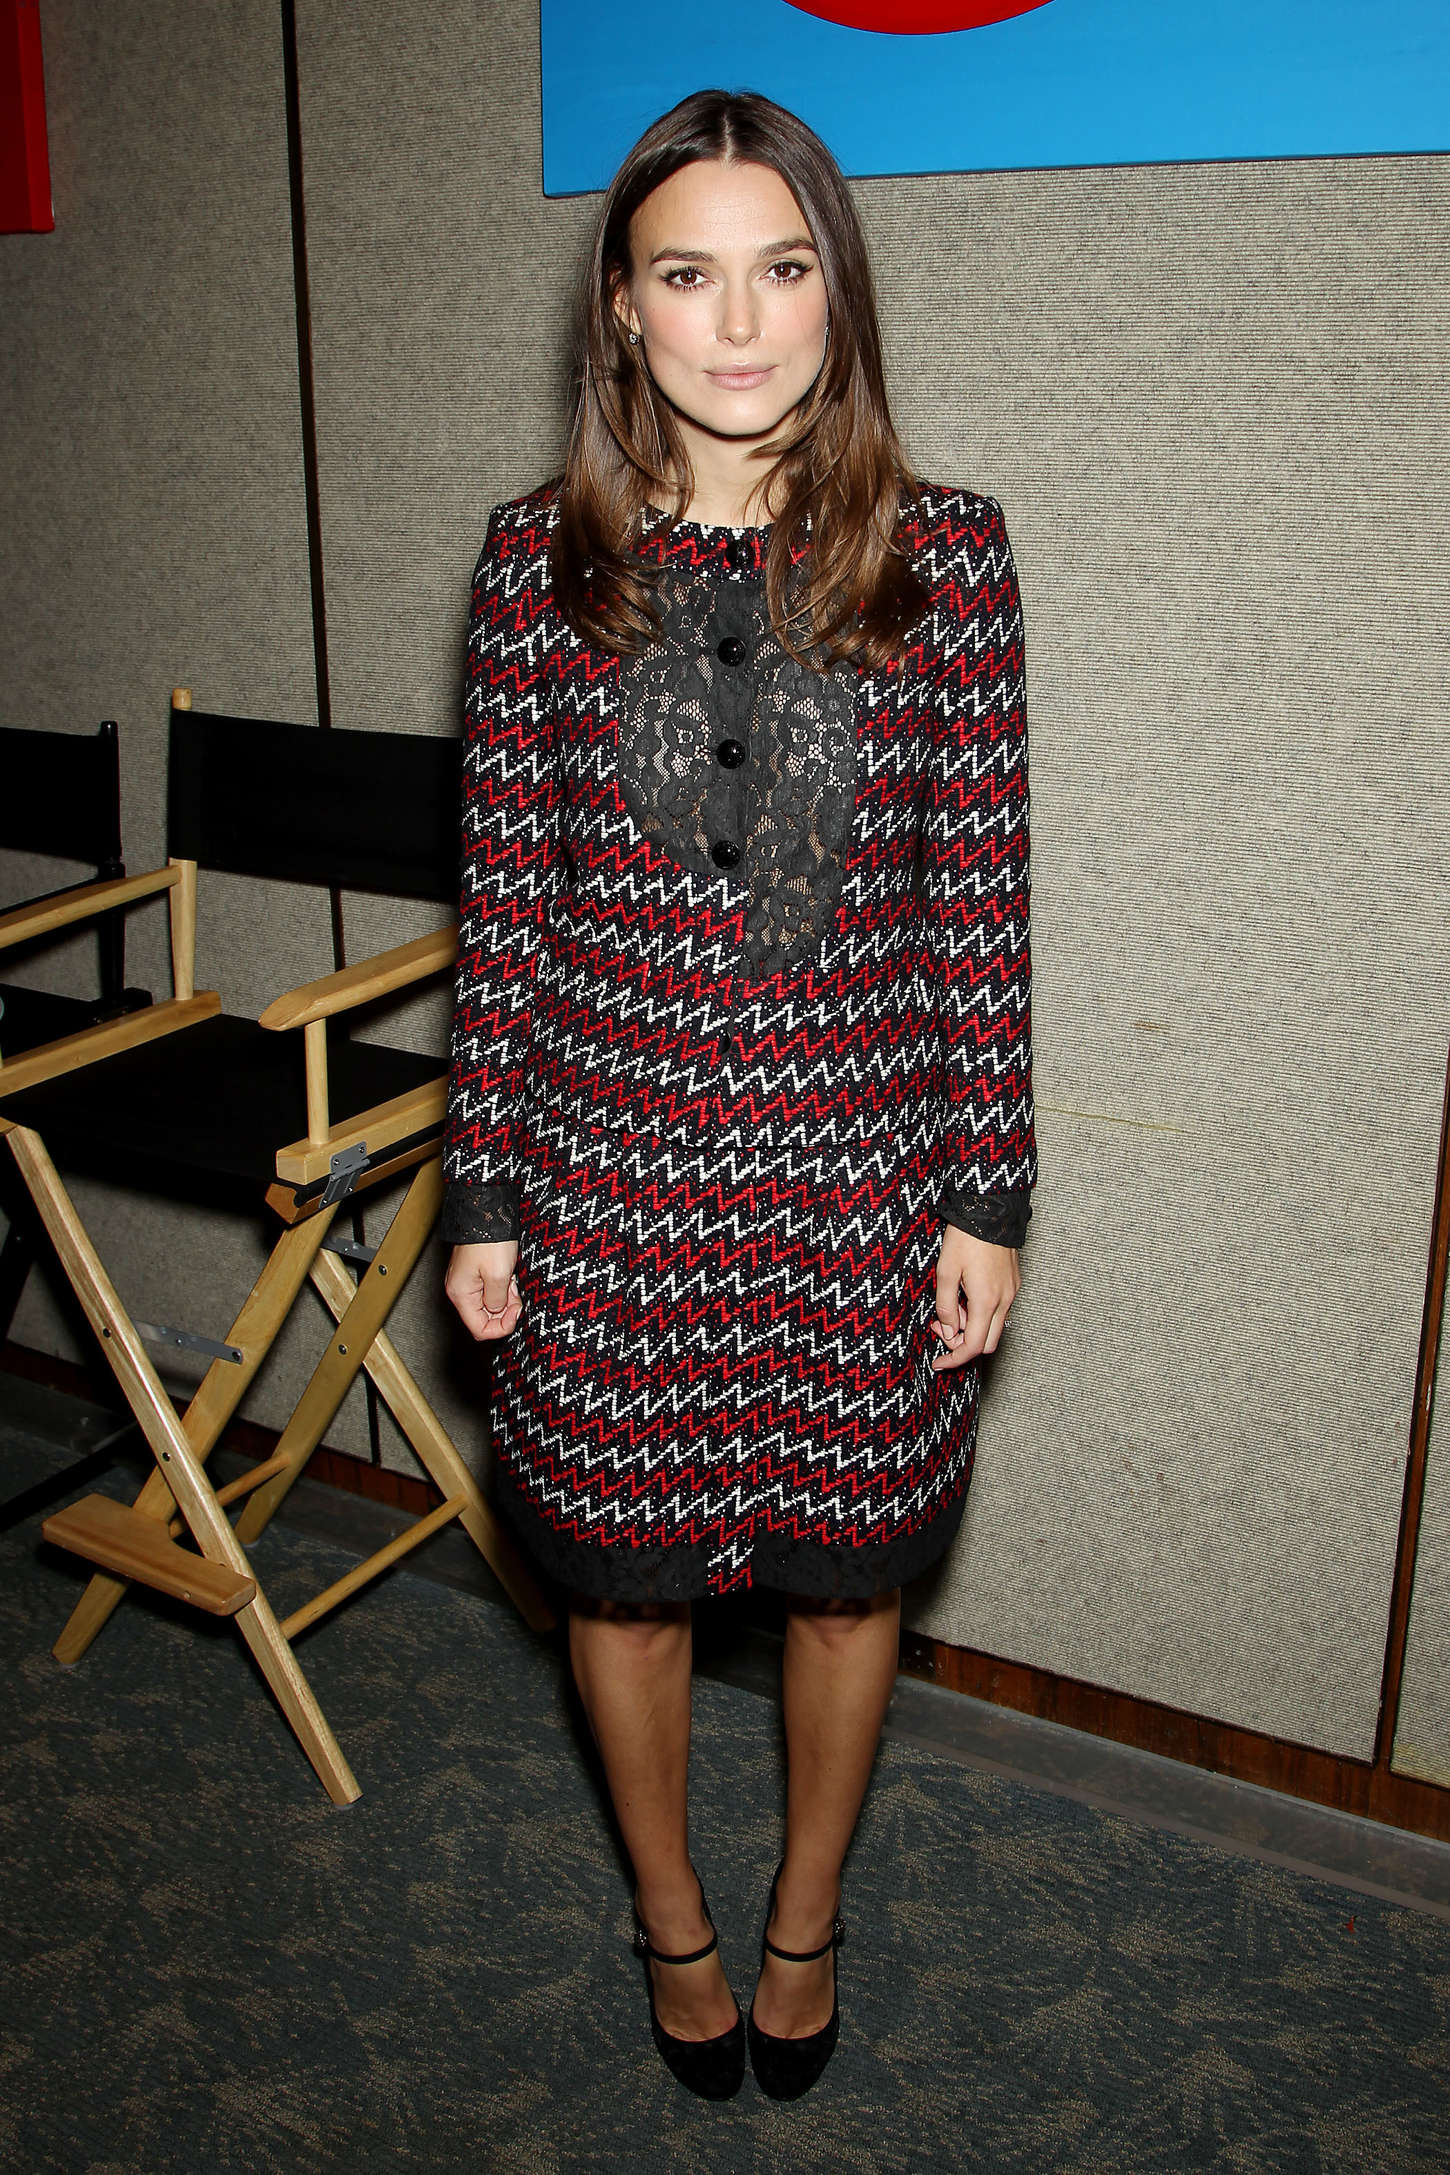 keira-knightley-chanel-imitation-game-new-york-luncheon/